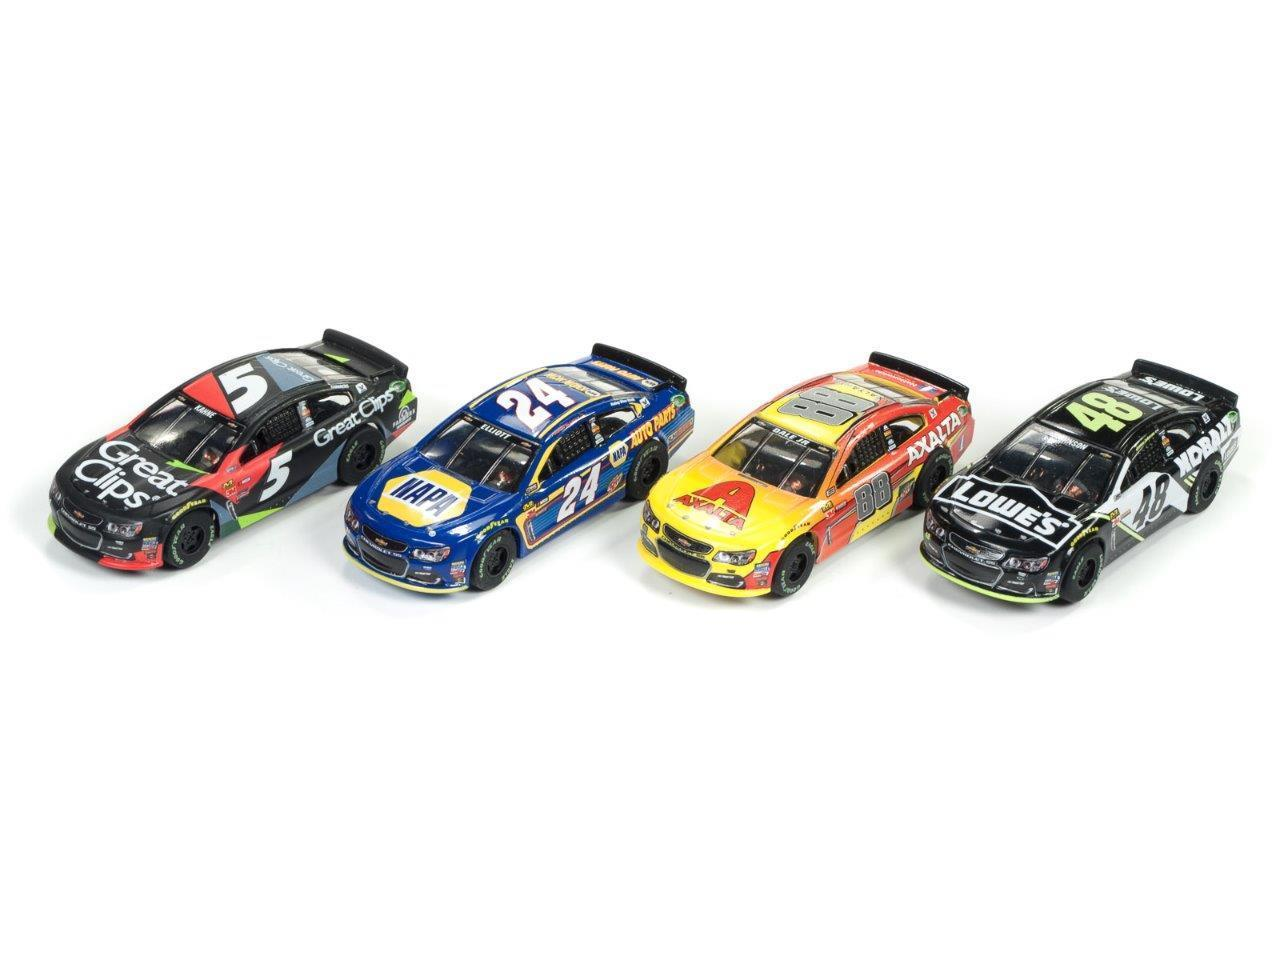 Super III NASCAR Rel 2 4-Car Set